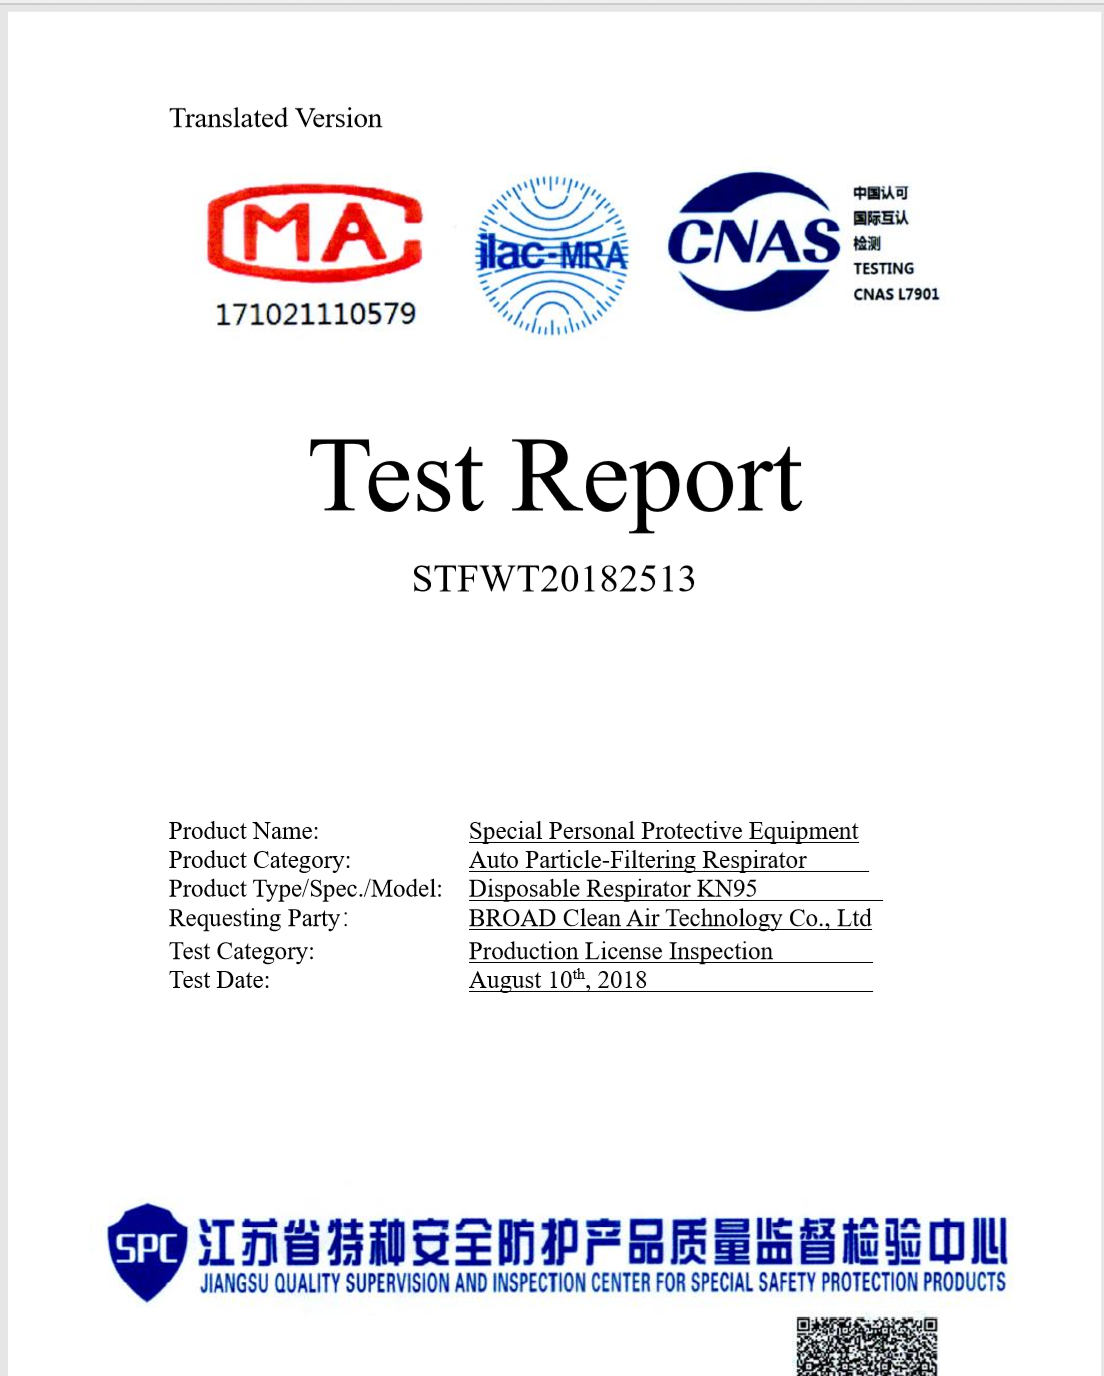 Broad airpro mask PPE test report KN95